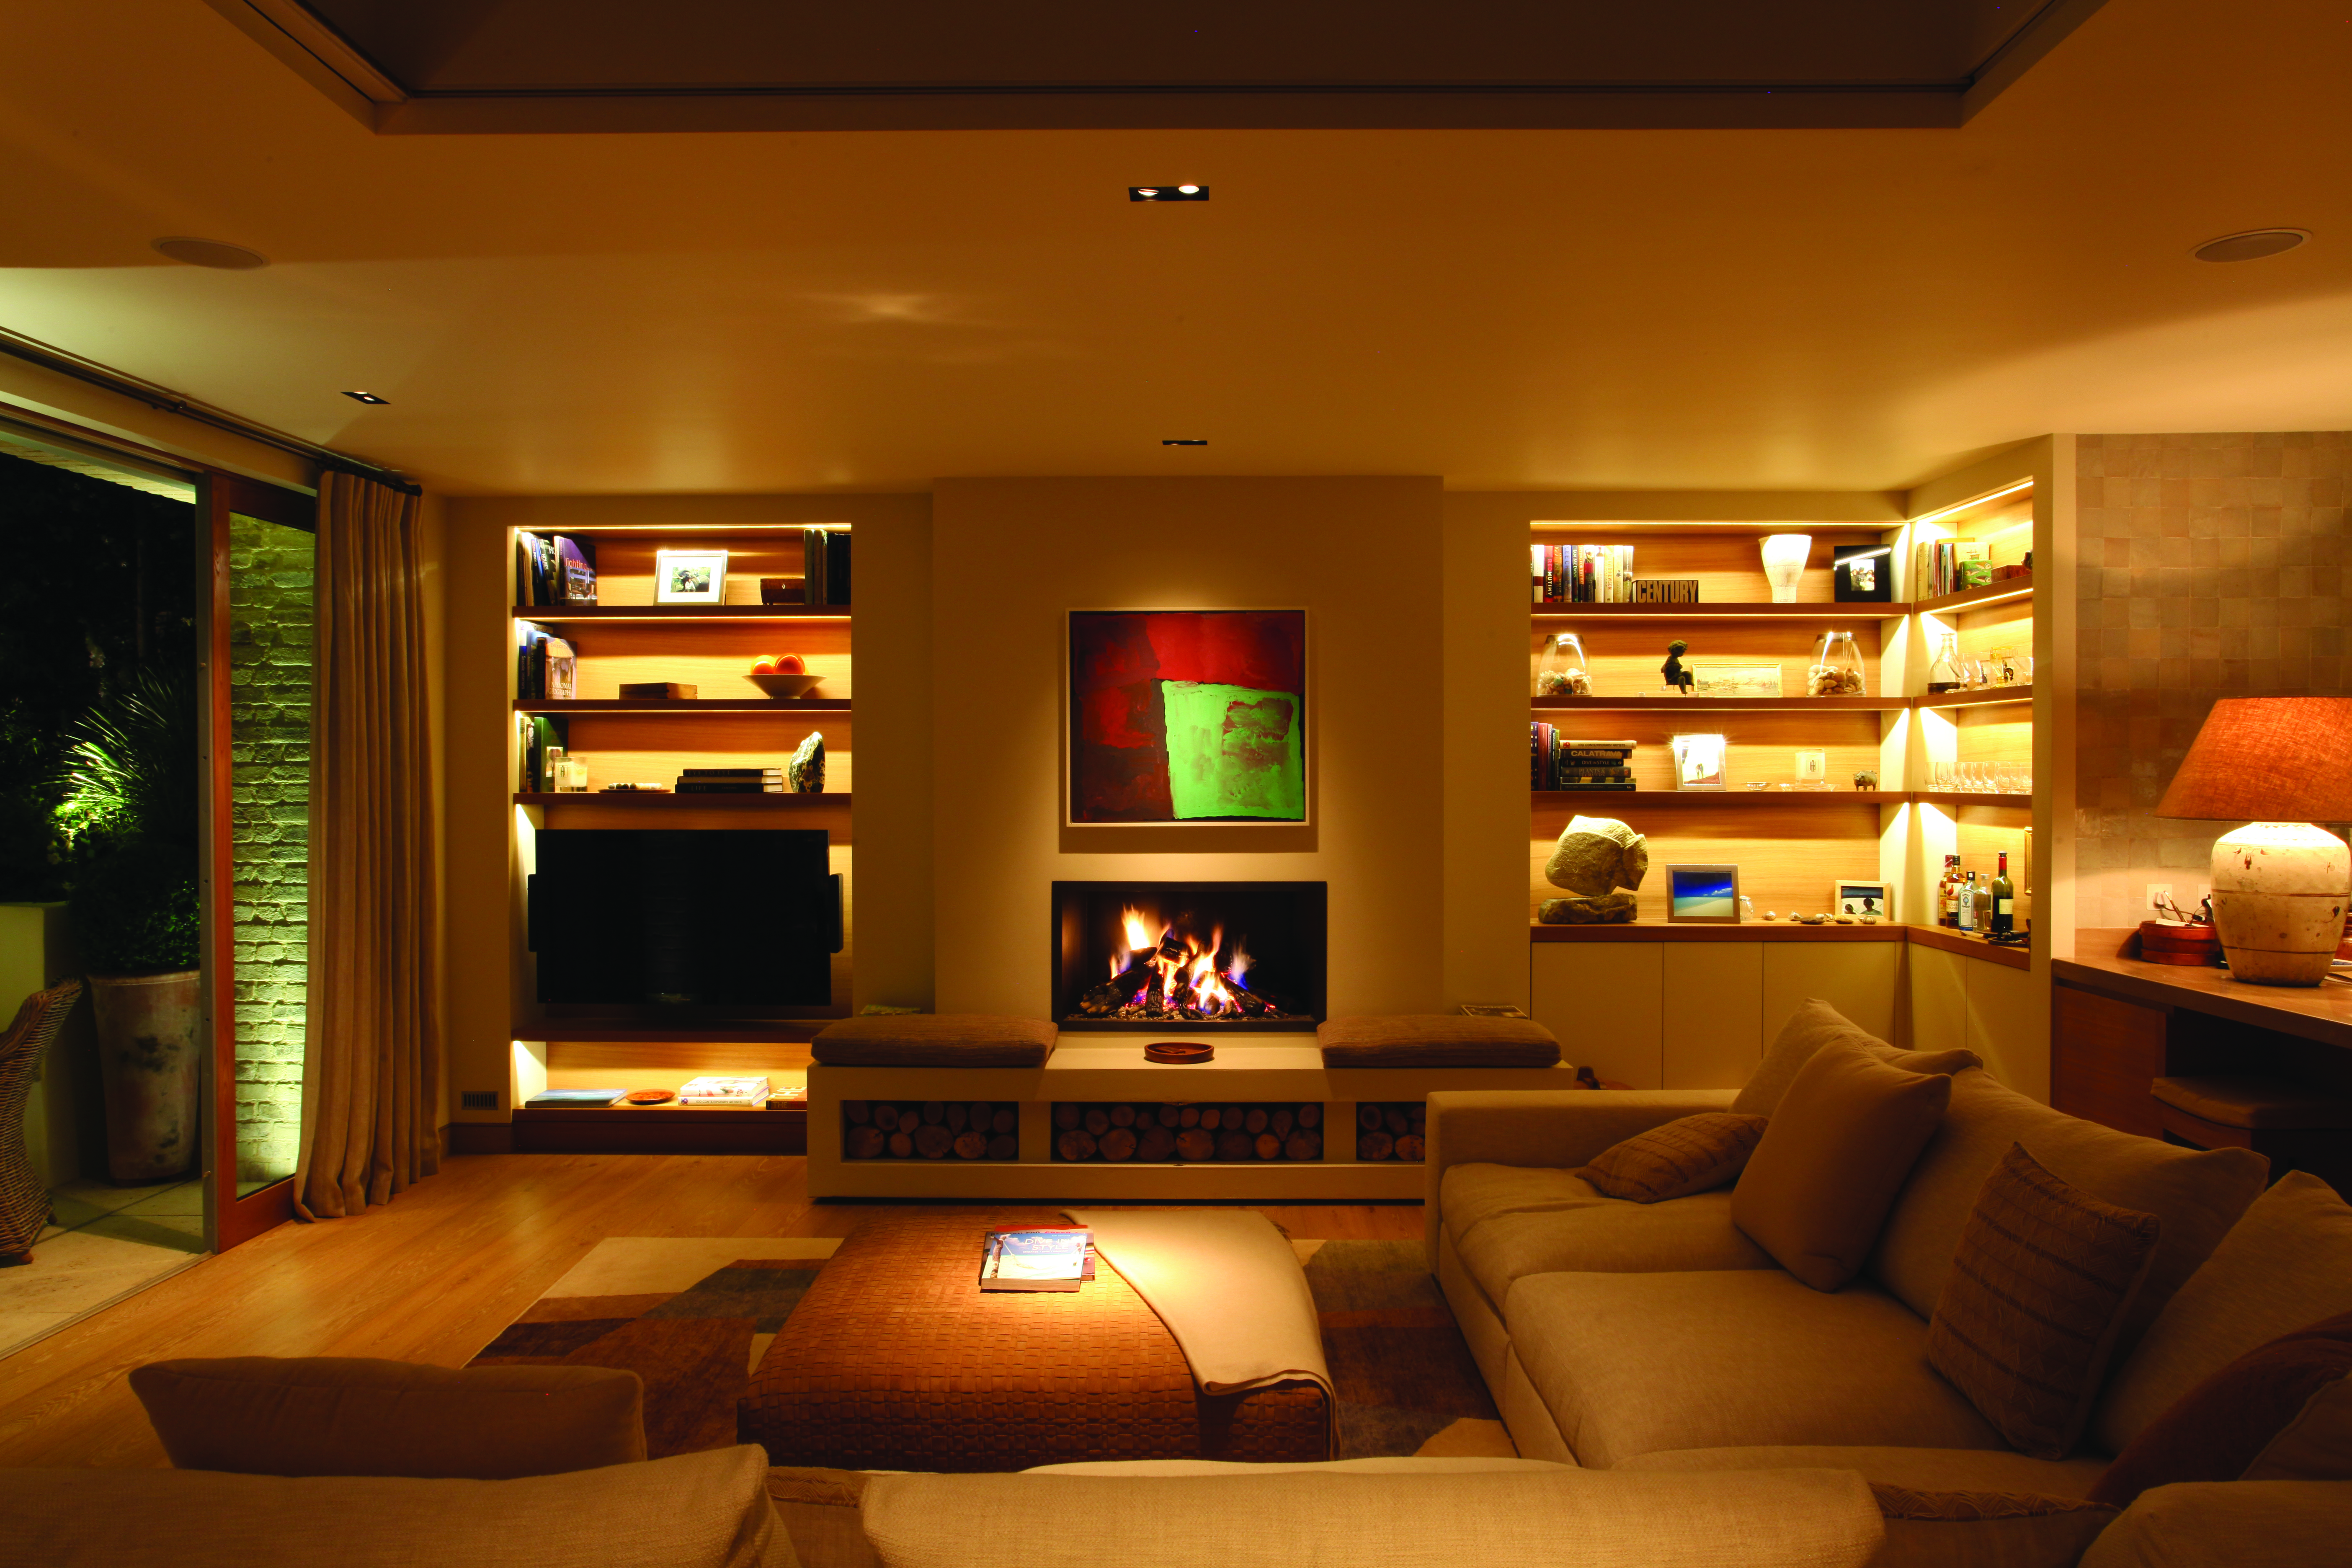 practical lighting. How Do You Go About Lighting A Home? Practical